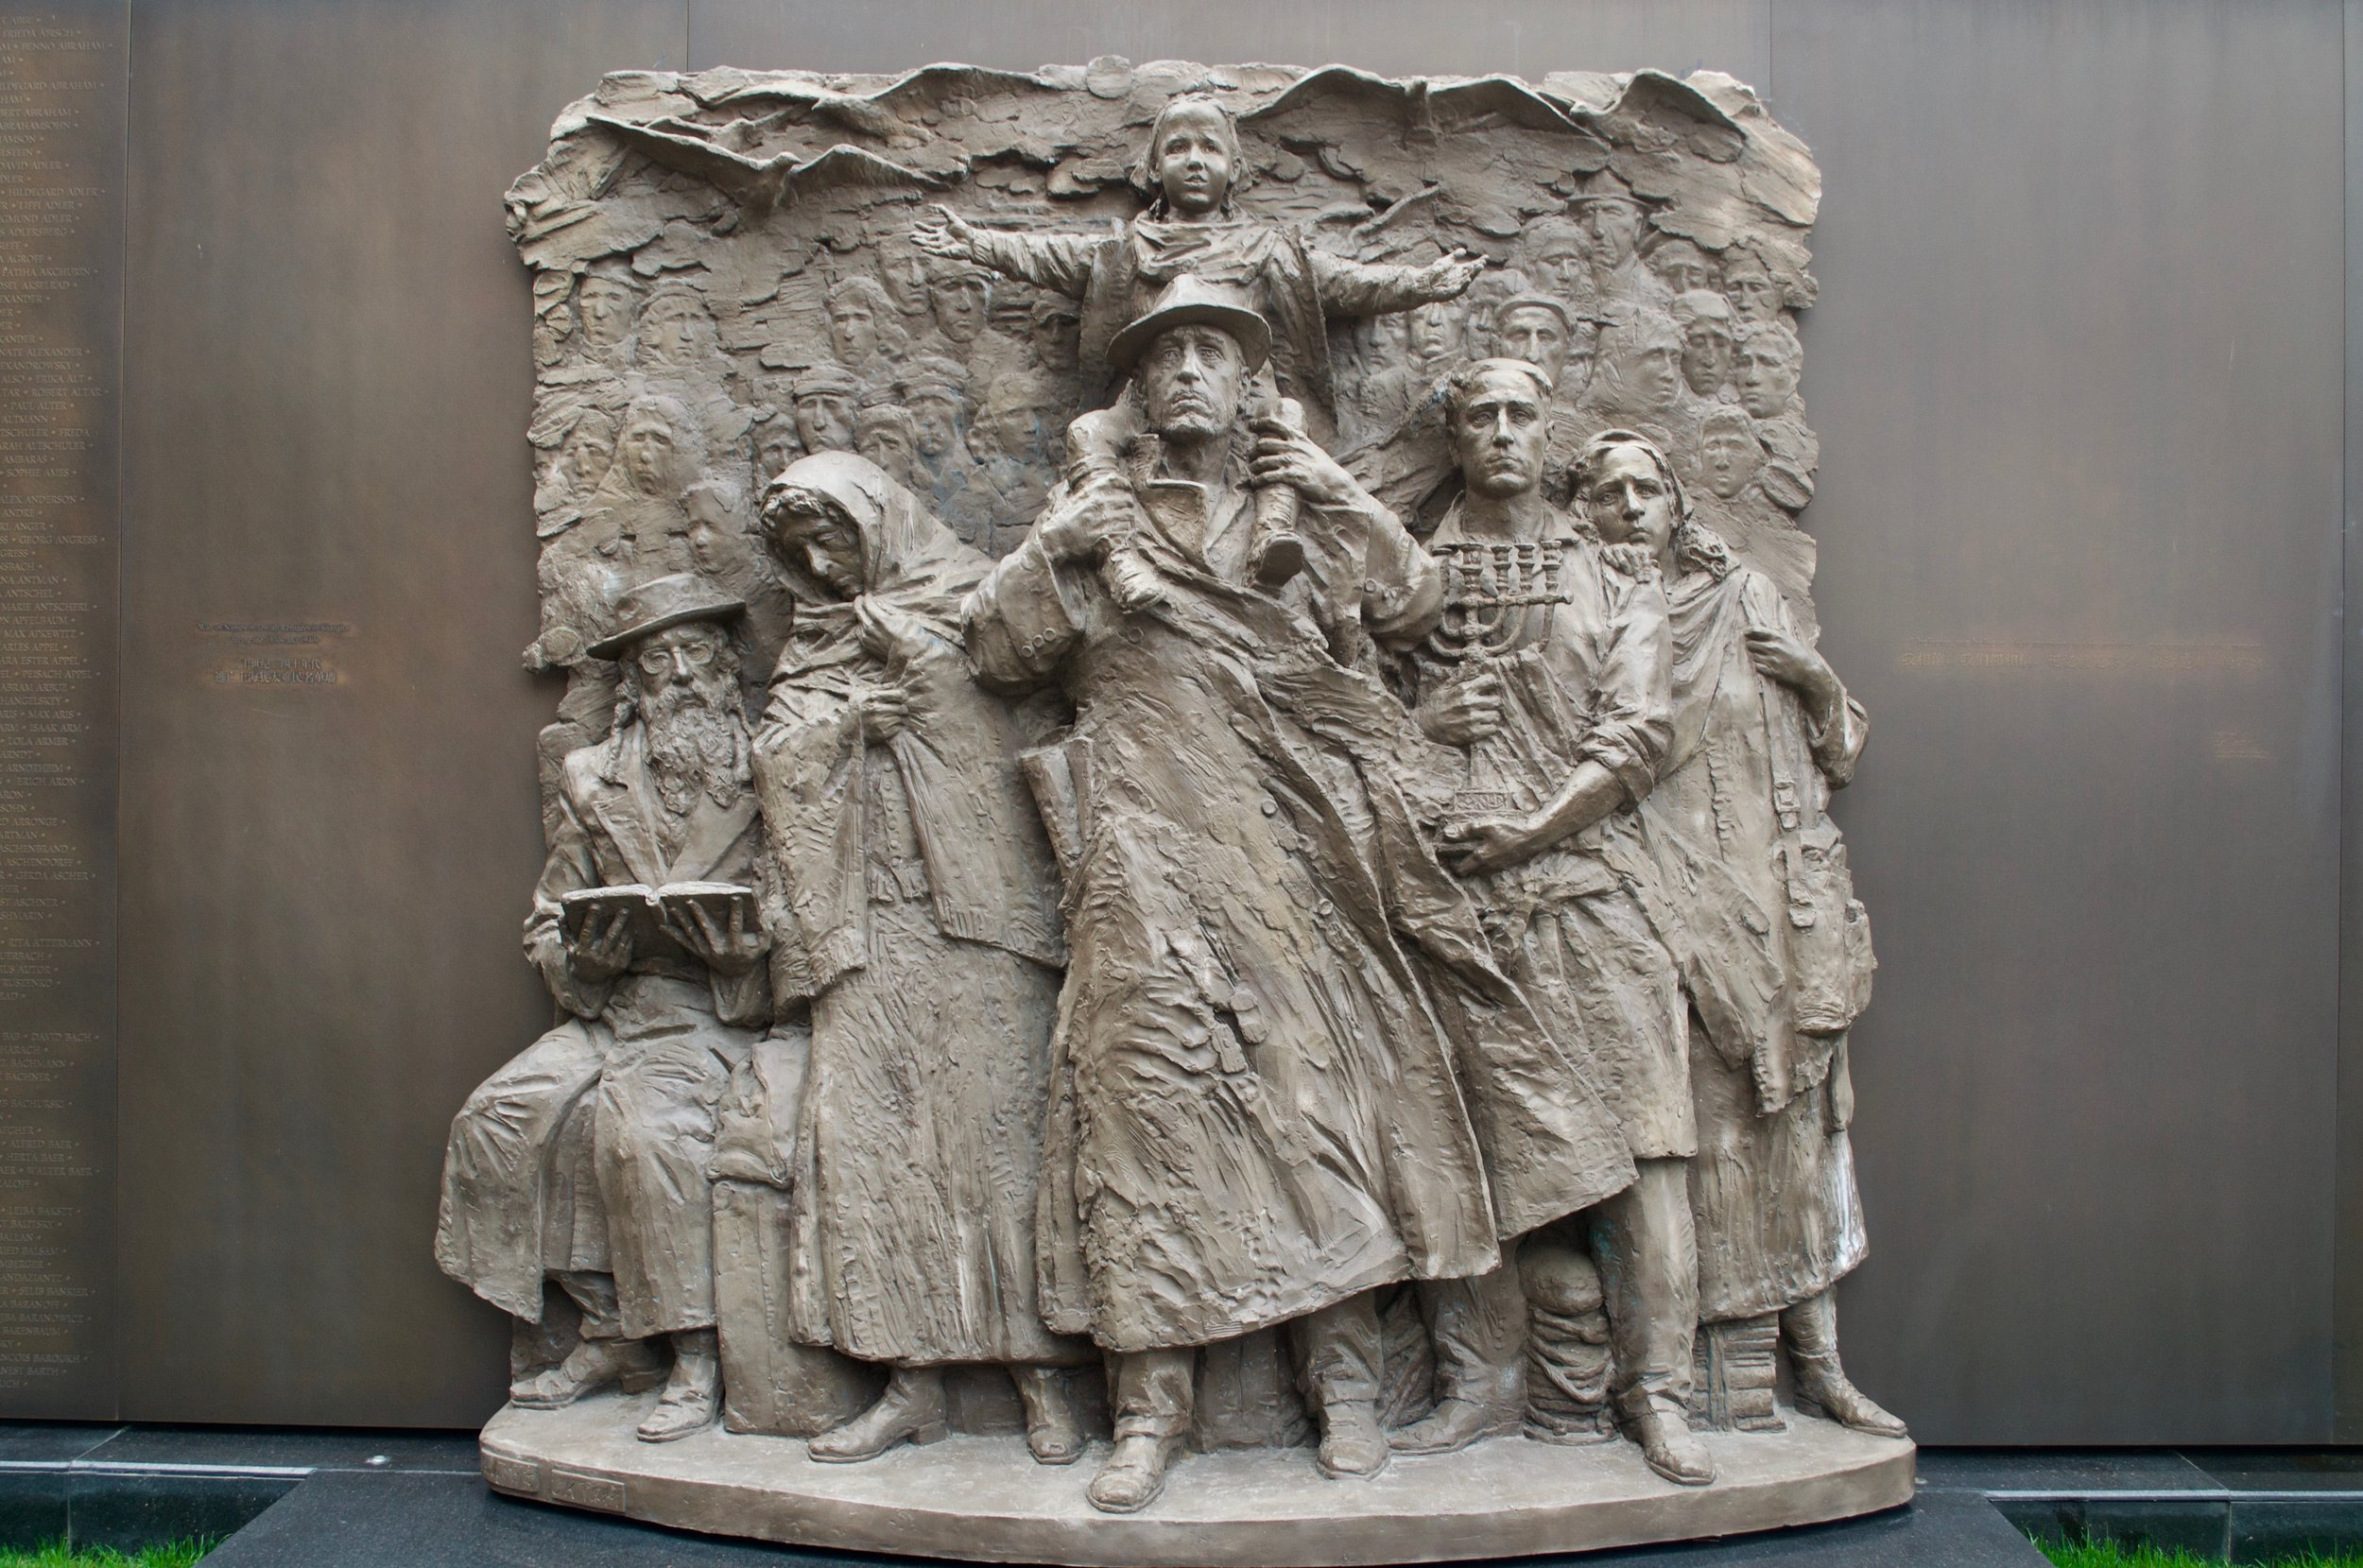 Relief Sculpture of six people meant to represent the six million Jews killed during the Holocaust. [Nicholas Zhang Archives]